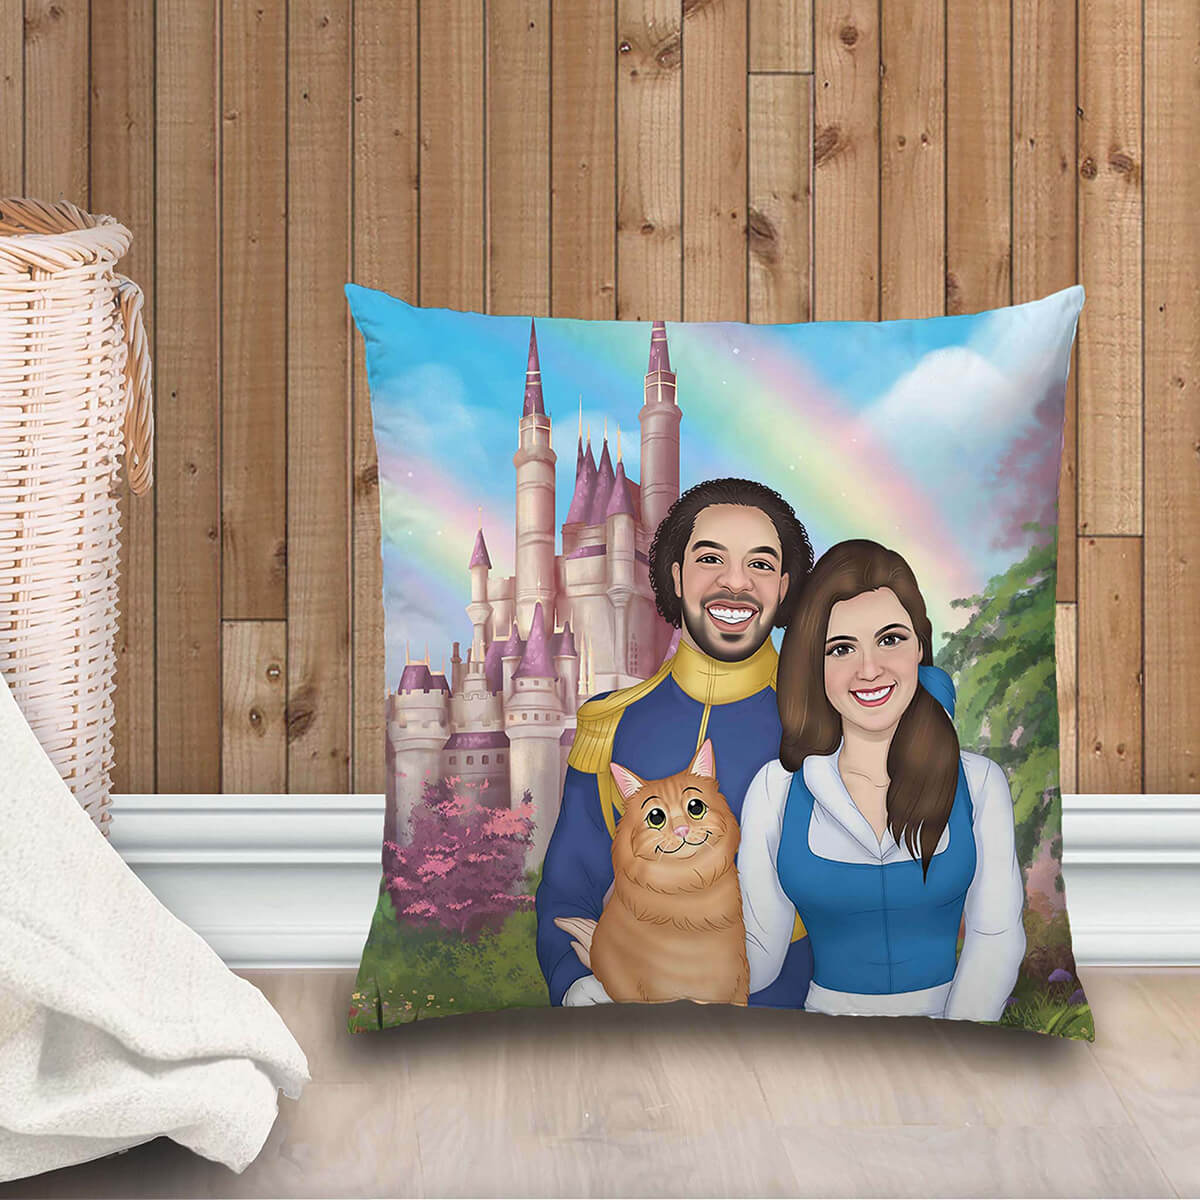 CUSTOM CARTOON STYLE FAMILY PLUSH PILLOW